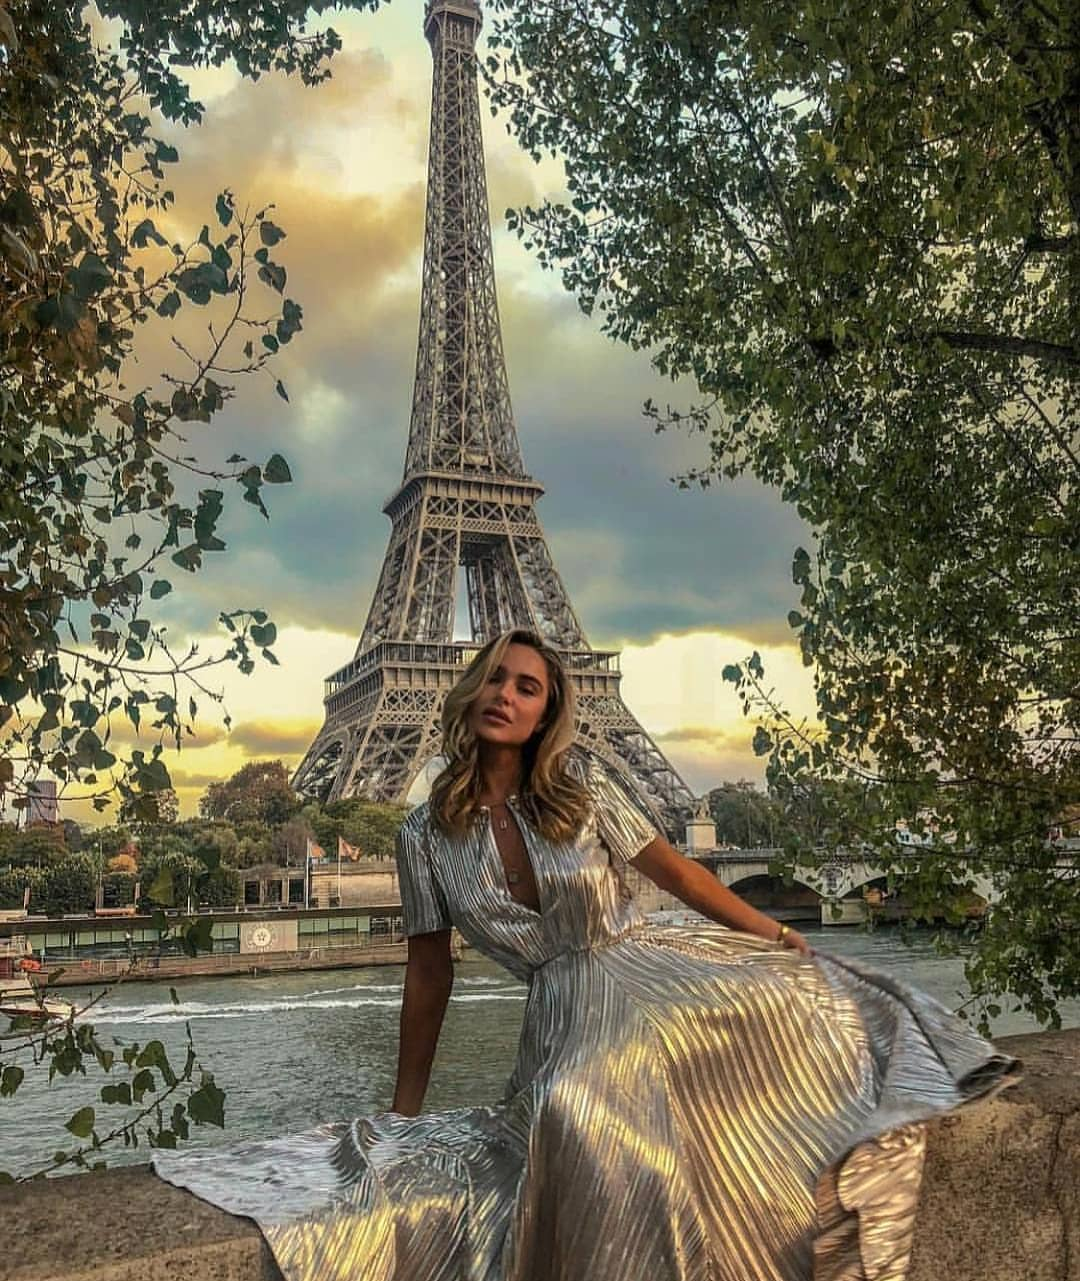 Shiny Silver Pleated Maxi Dress For Spring In Paris 2021